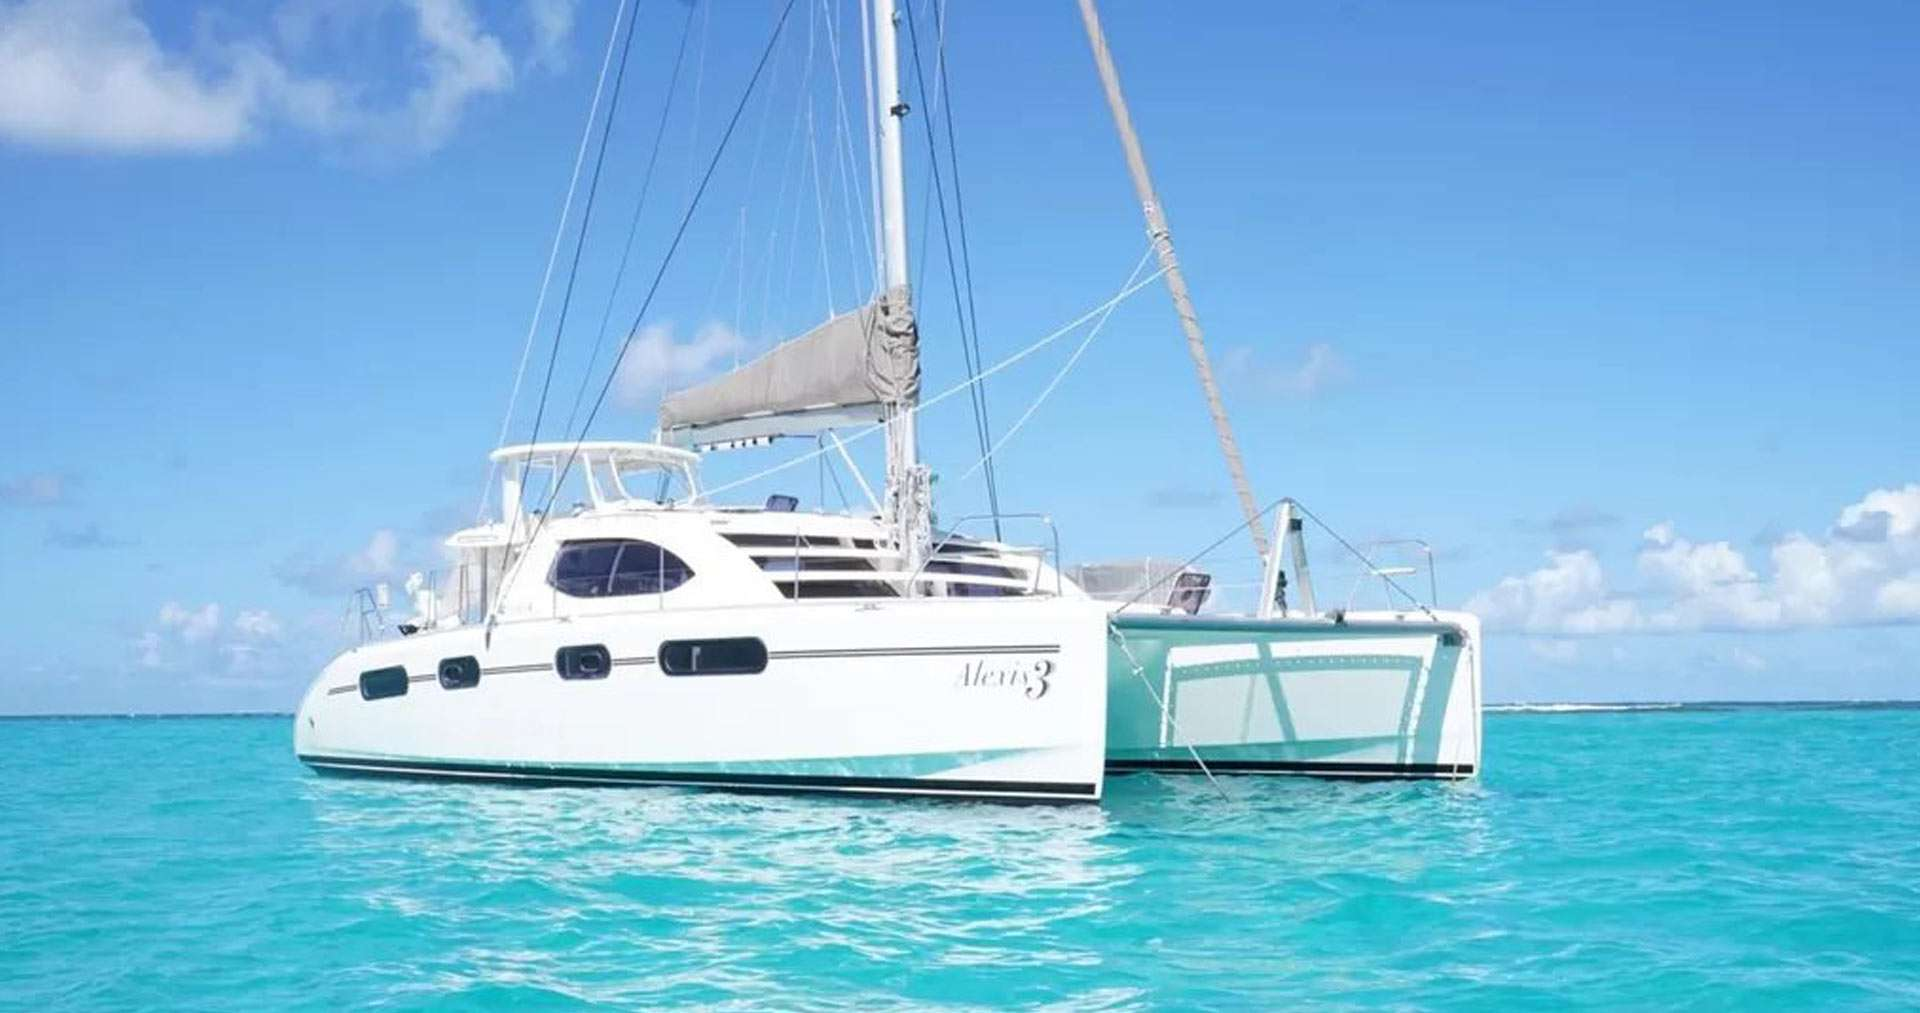 Cat Yacht 'Cat', 6 PAX, 2 Crew, 46.00 Ft, 14.00 Meters, Built 2008, Robertson and Caine, Refit Year 2018